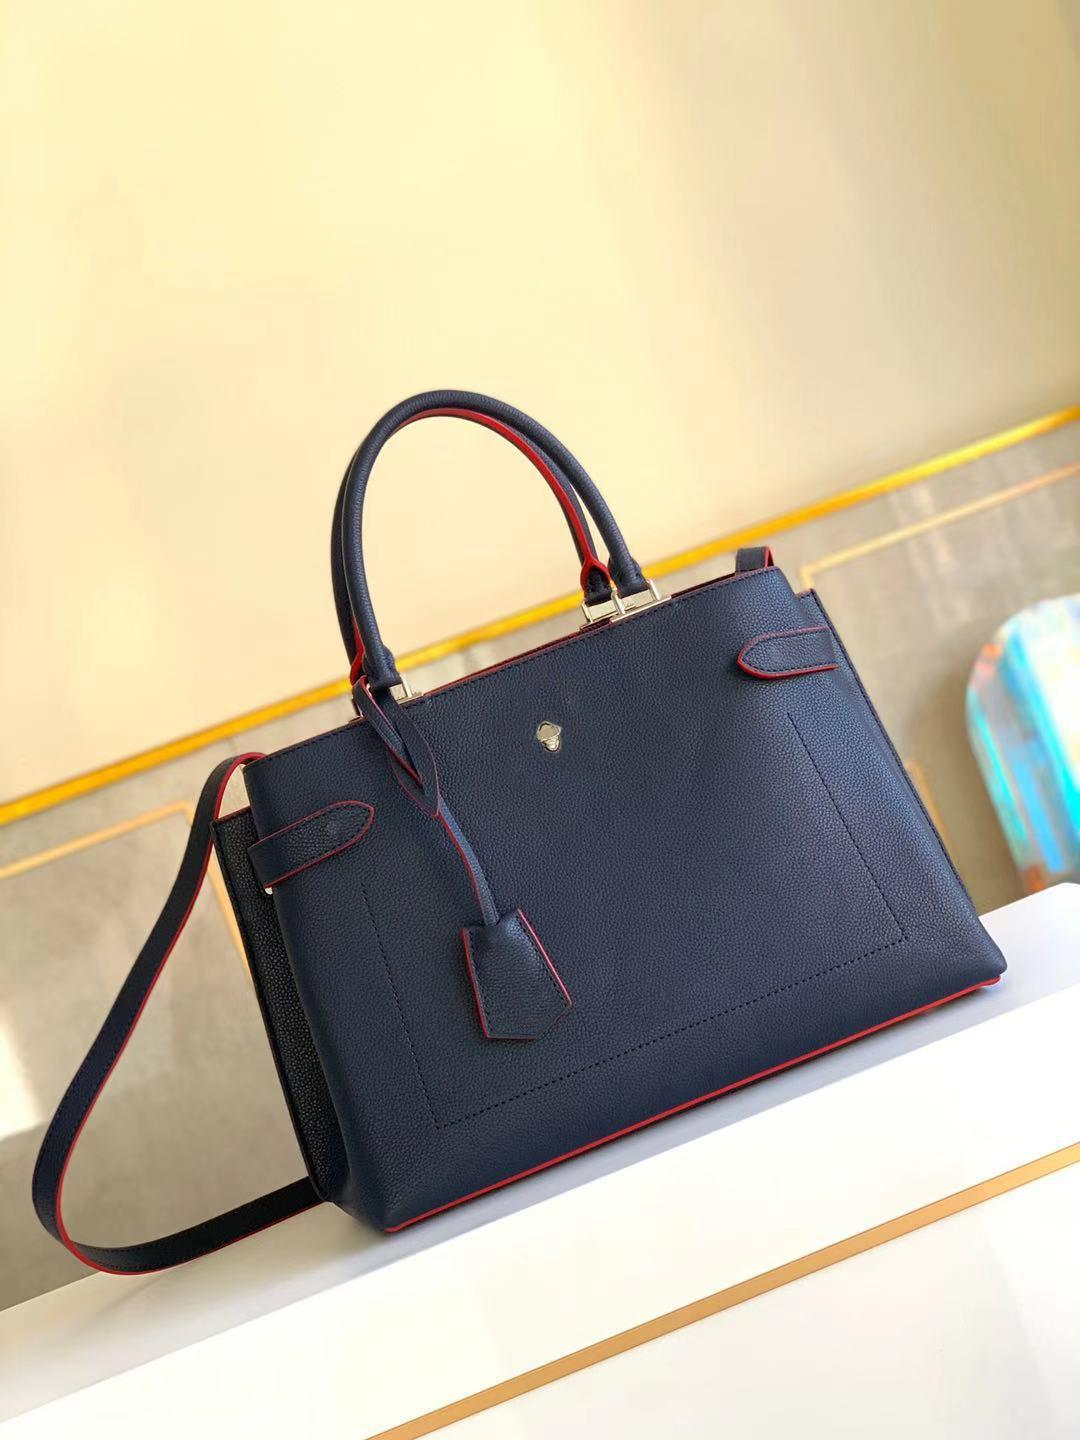 LOCKME DAY TOTE BAG original leather elegant lady shoulder shopping bag tote high quality Messenger bags chic newest purse wallet with strap